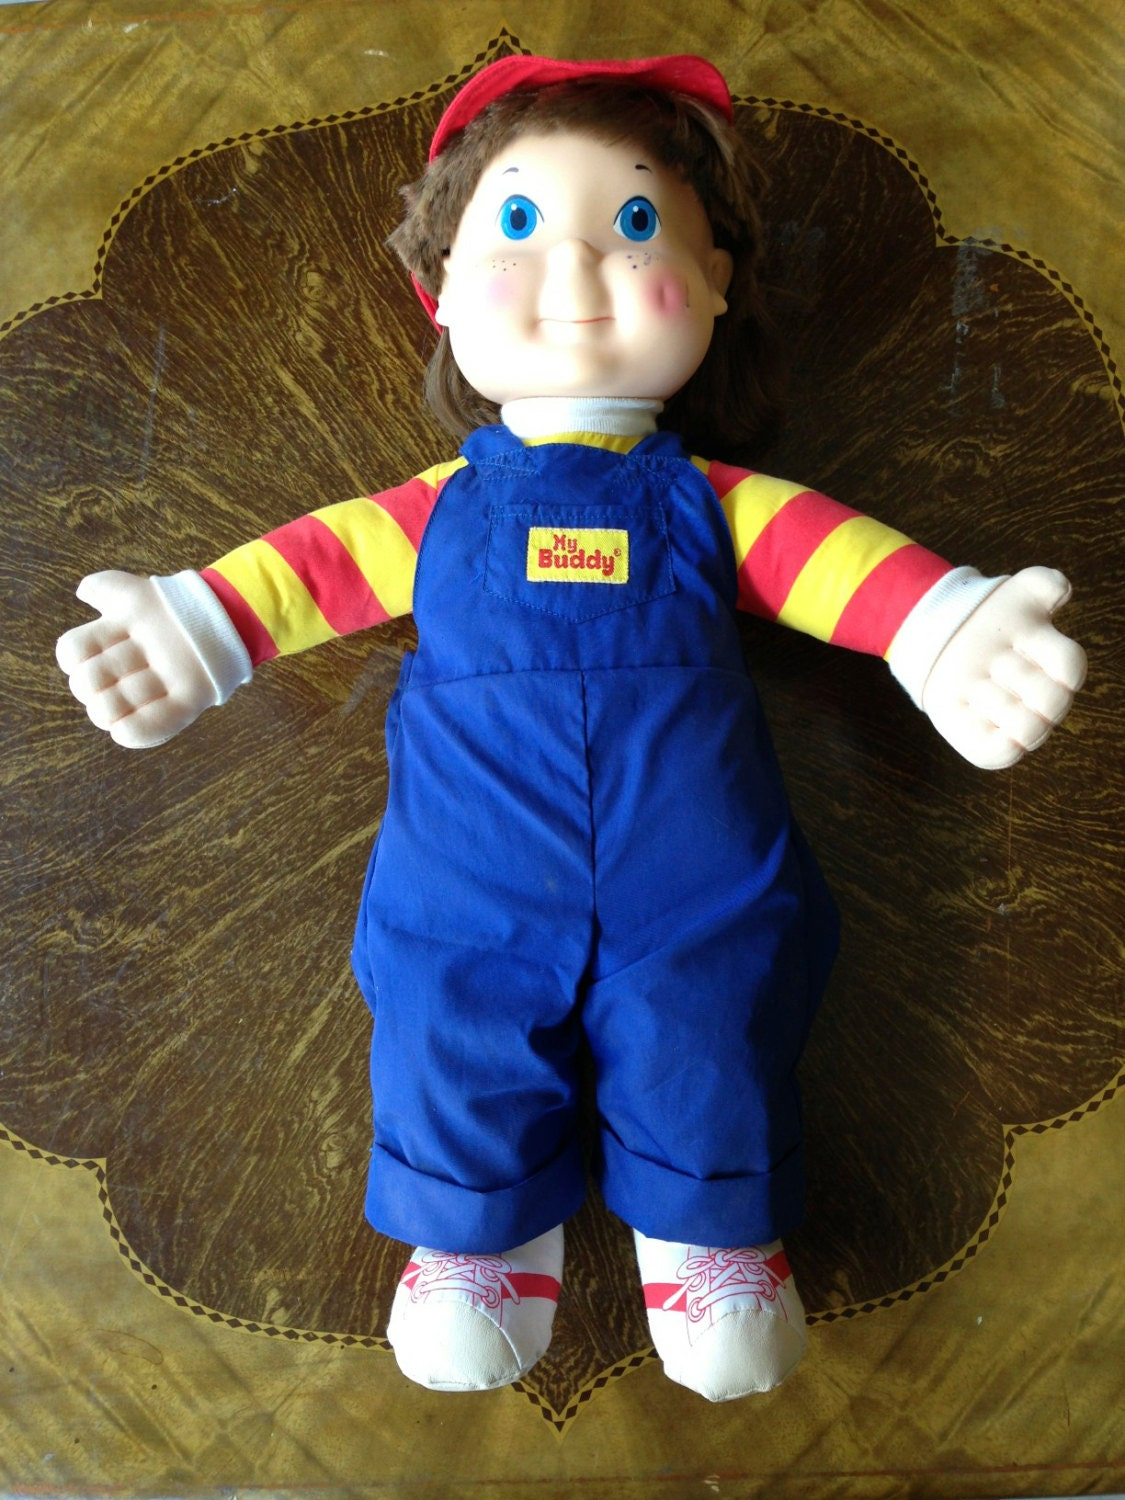 1990 Playskool My Buddy Doll additionally Bob Knight Angry Rage Indiana Yells Smu Temple together with Basketballcore tumblr as well photos posh24   p 1020206 z prince william prince william kate middleton further . on bobby knight indiana